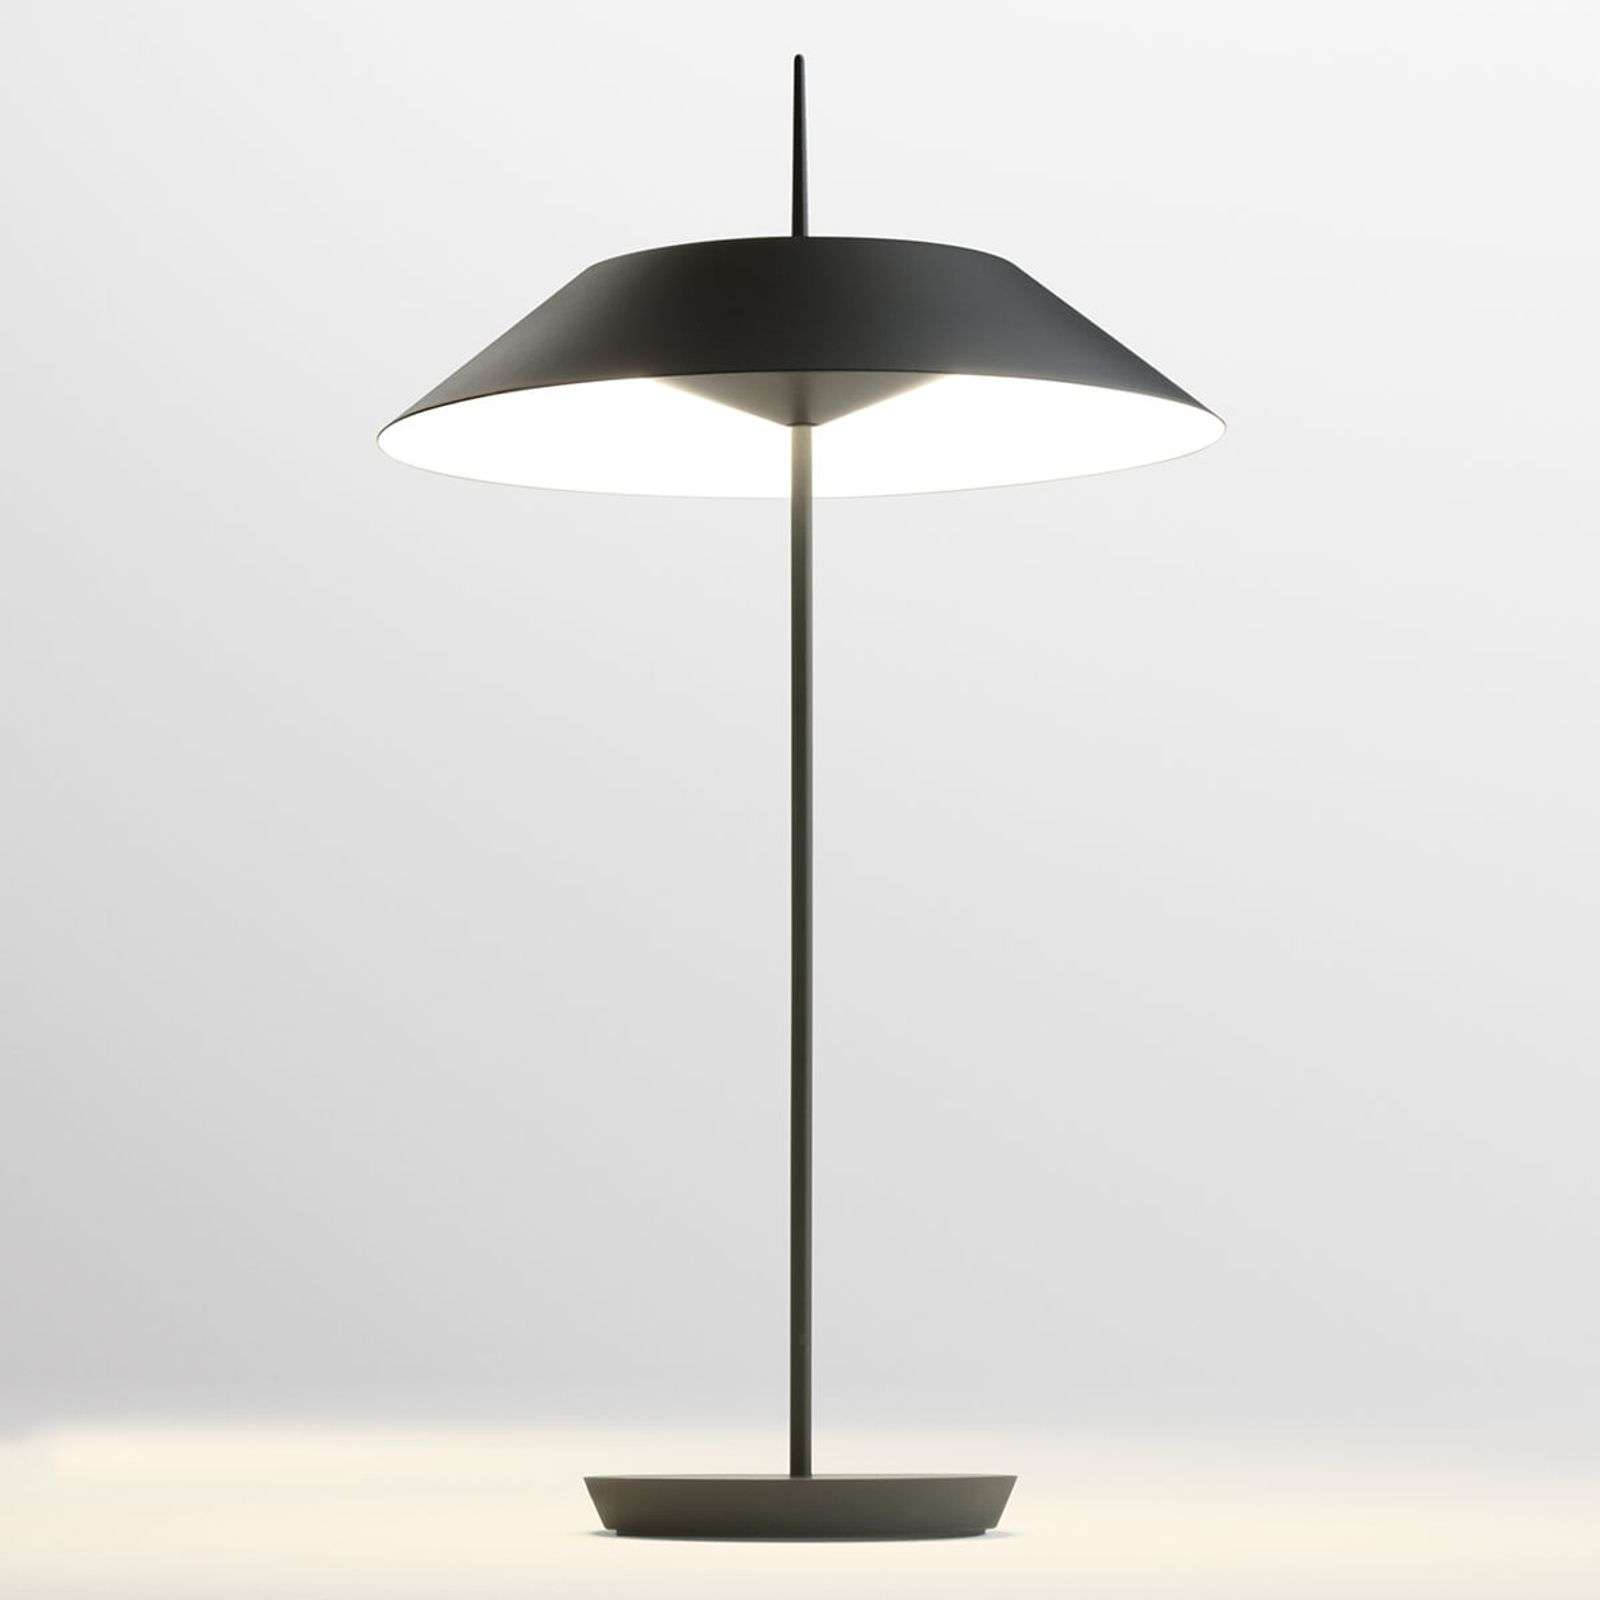 Vibia Mayfair lampe à poser LED, gris graphite